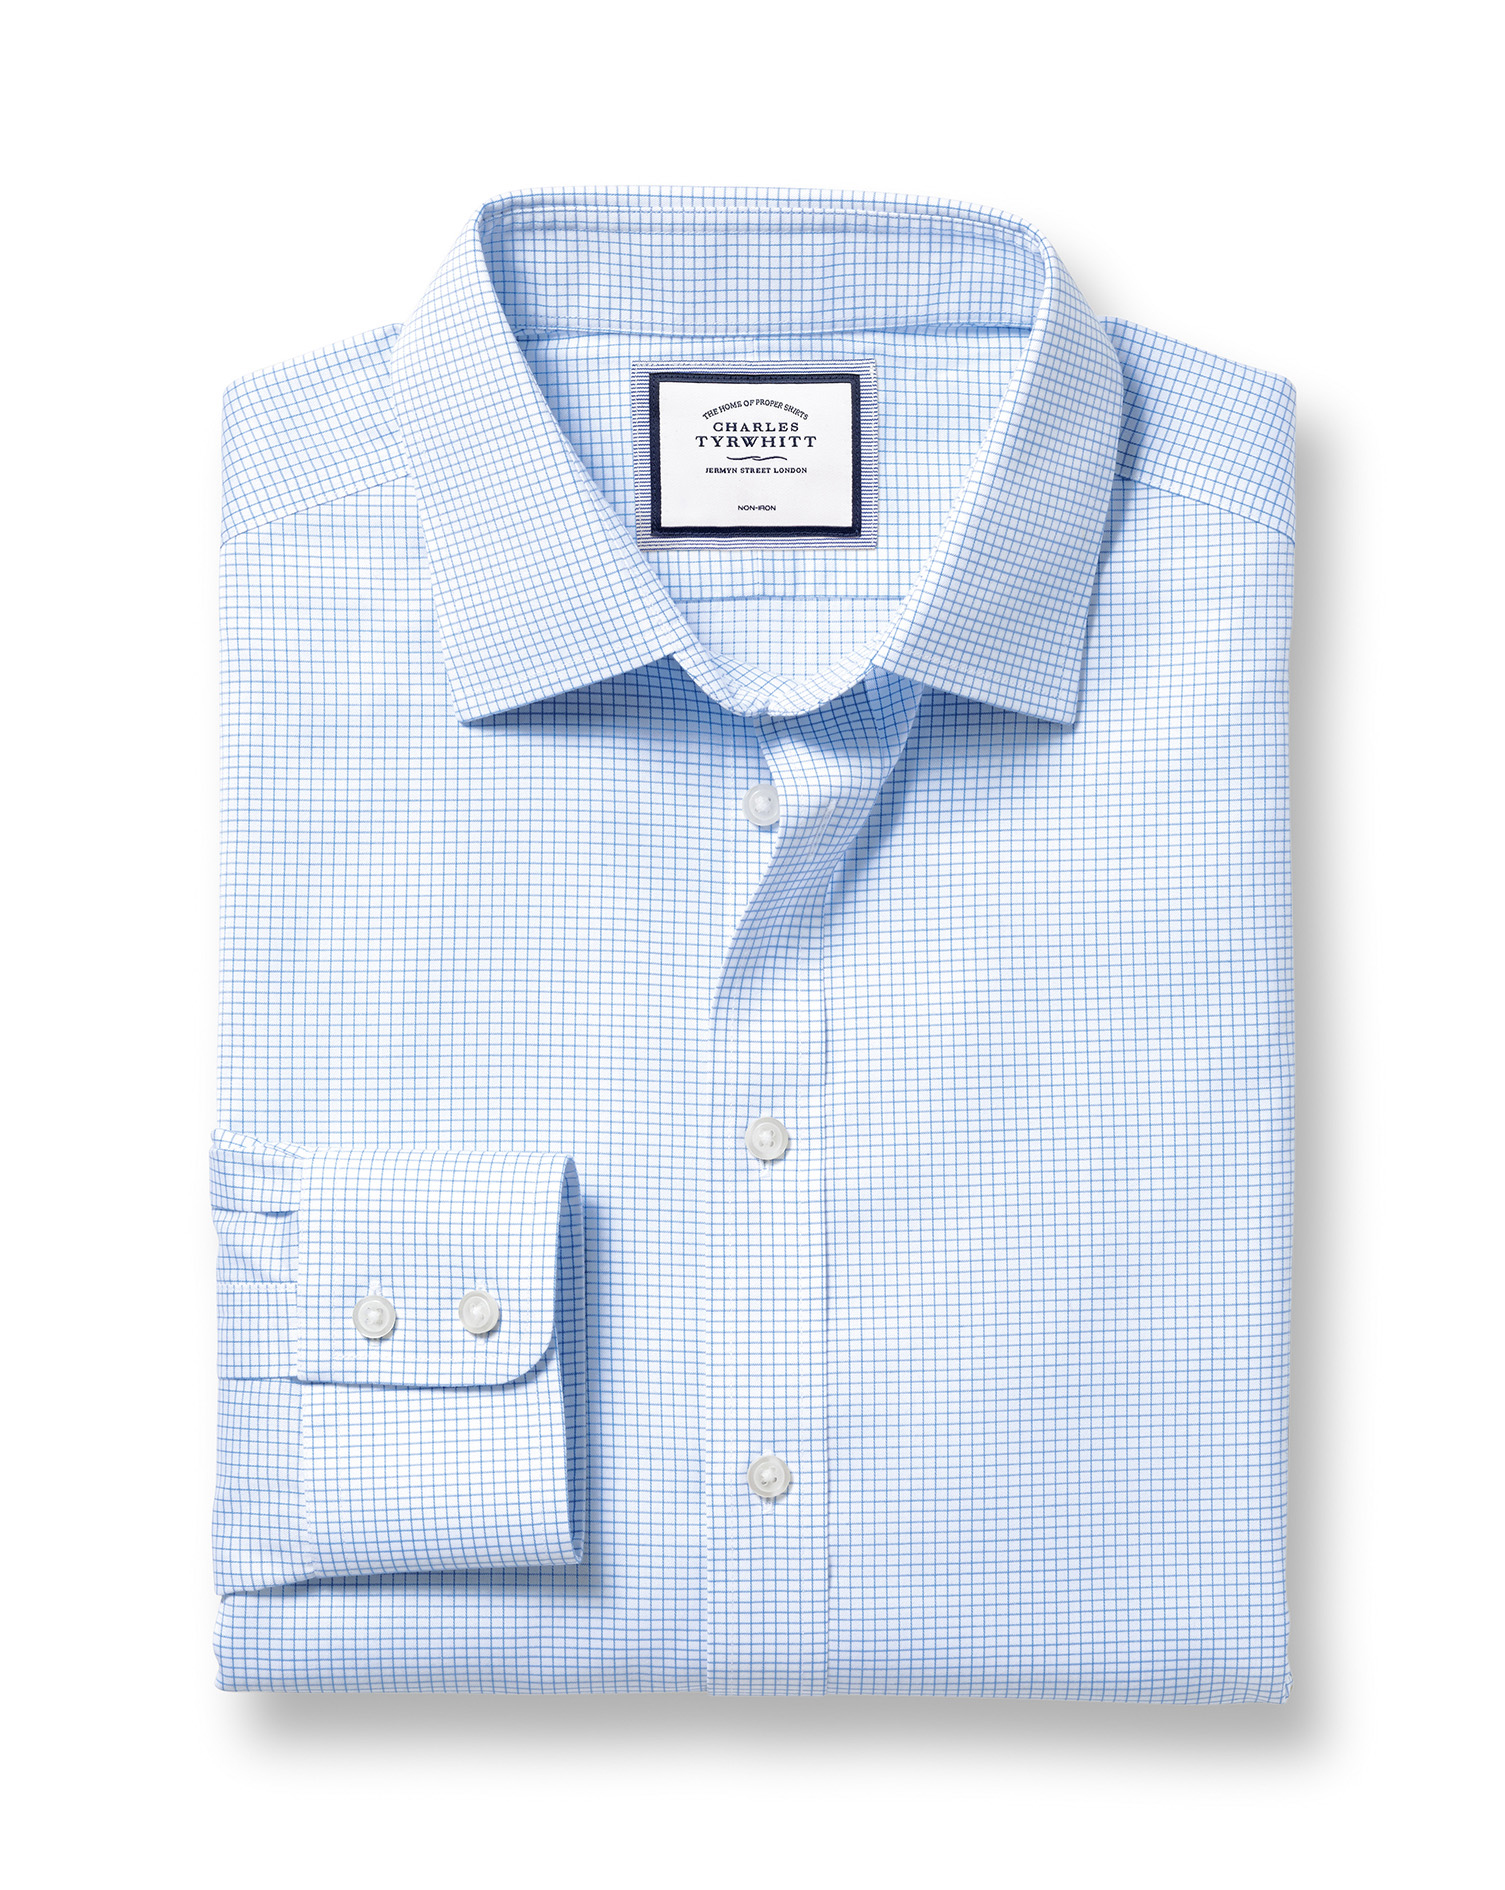 Slim Fit Non-Iron Twill Mini Grid Check Sky Blue Cotton Formal Shirt Single Cuff Size 15.5/33 by Cha